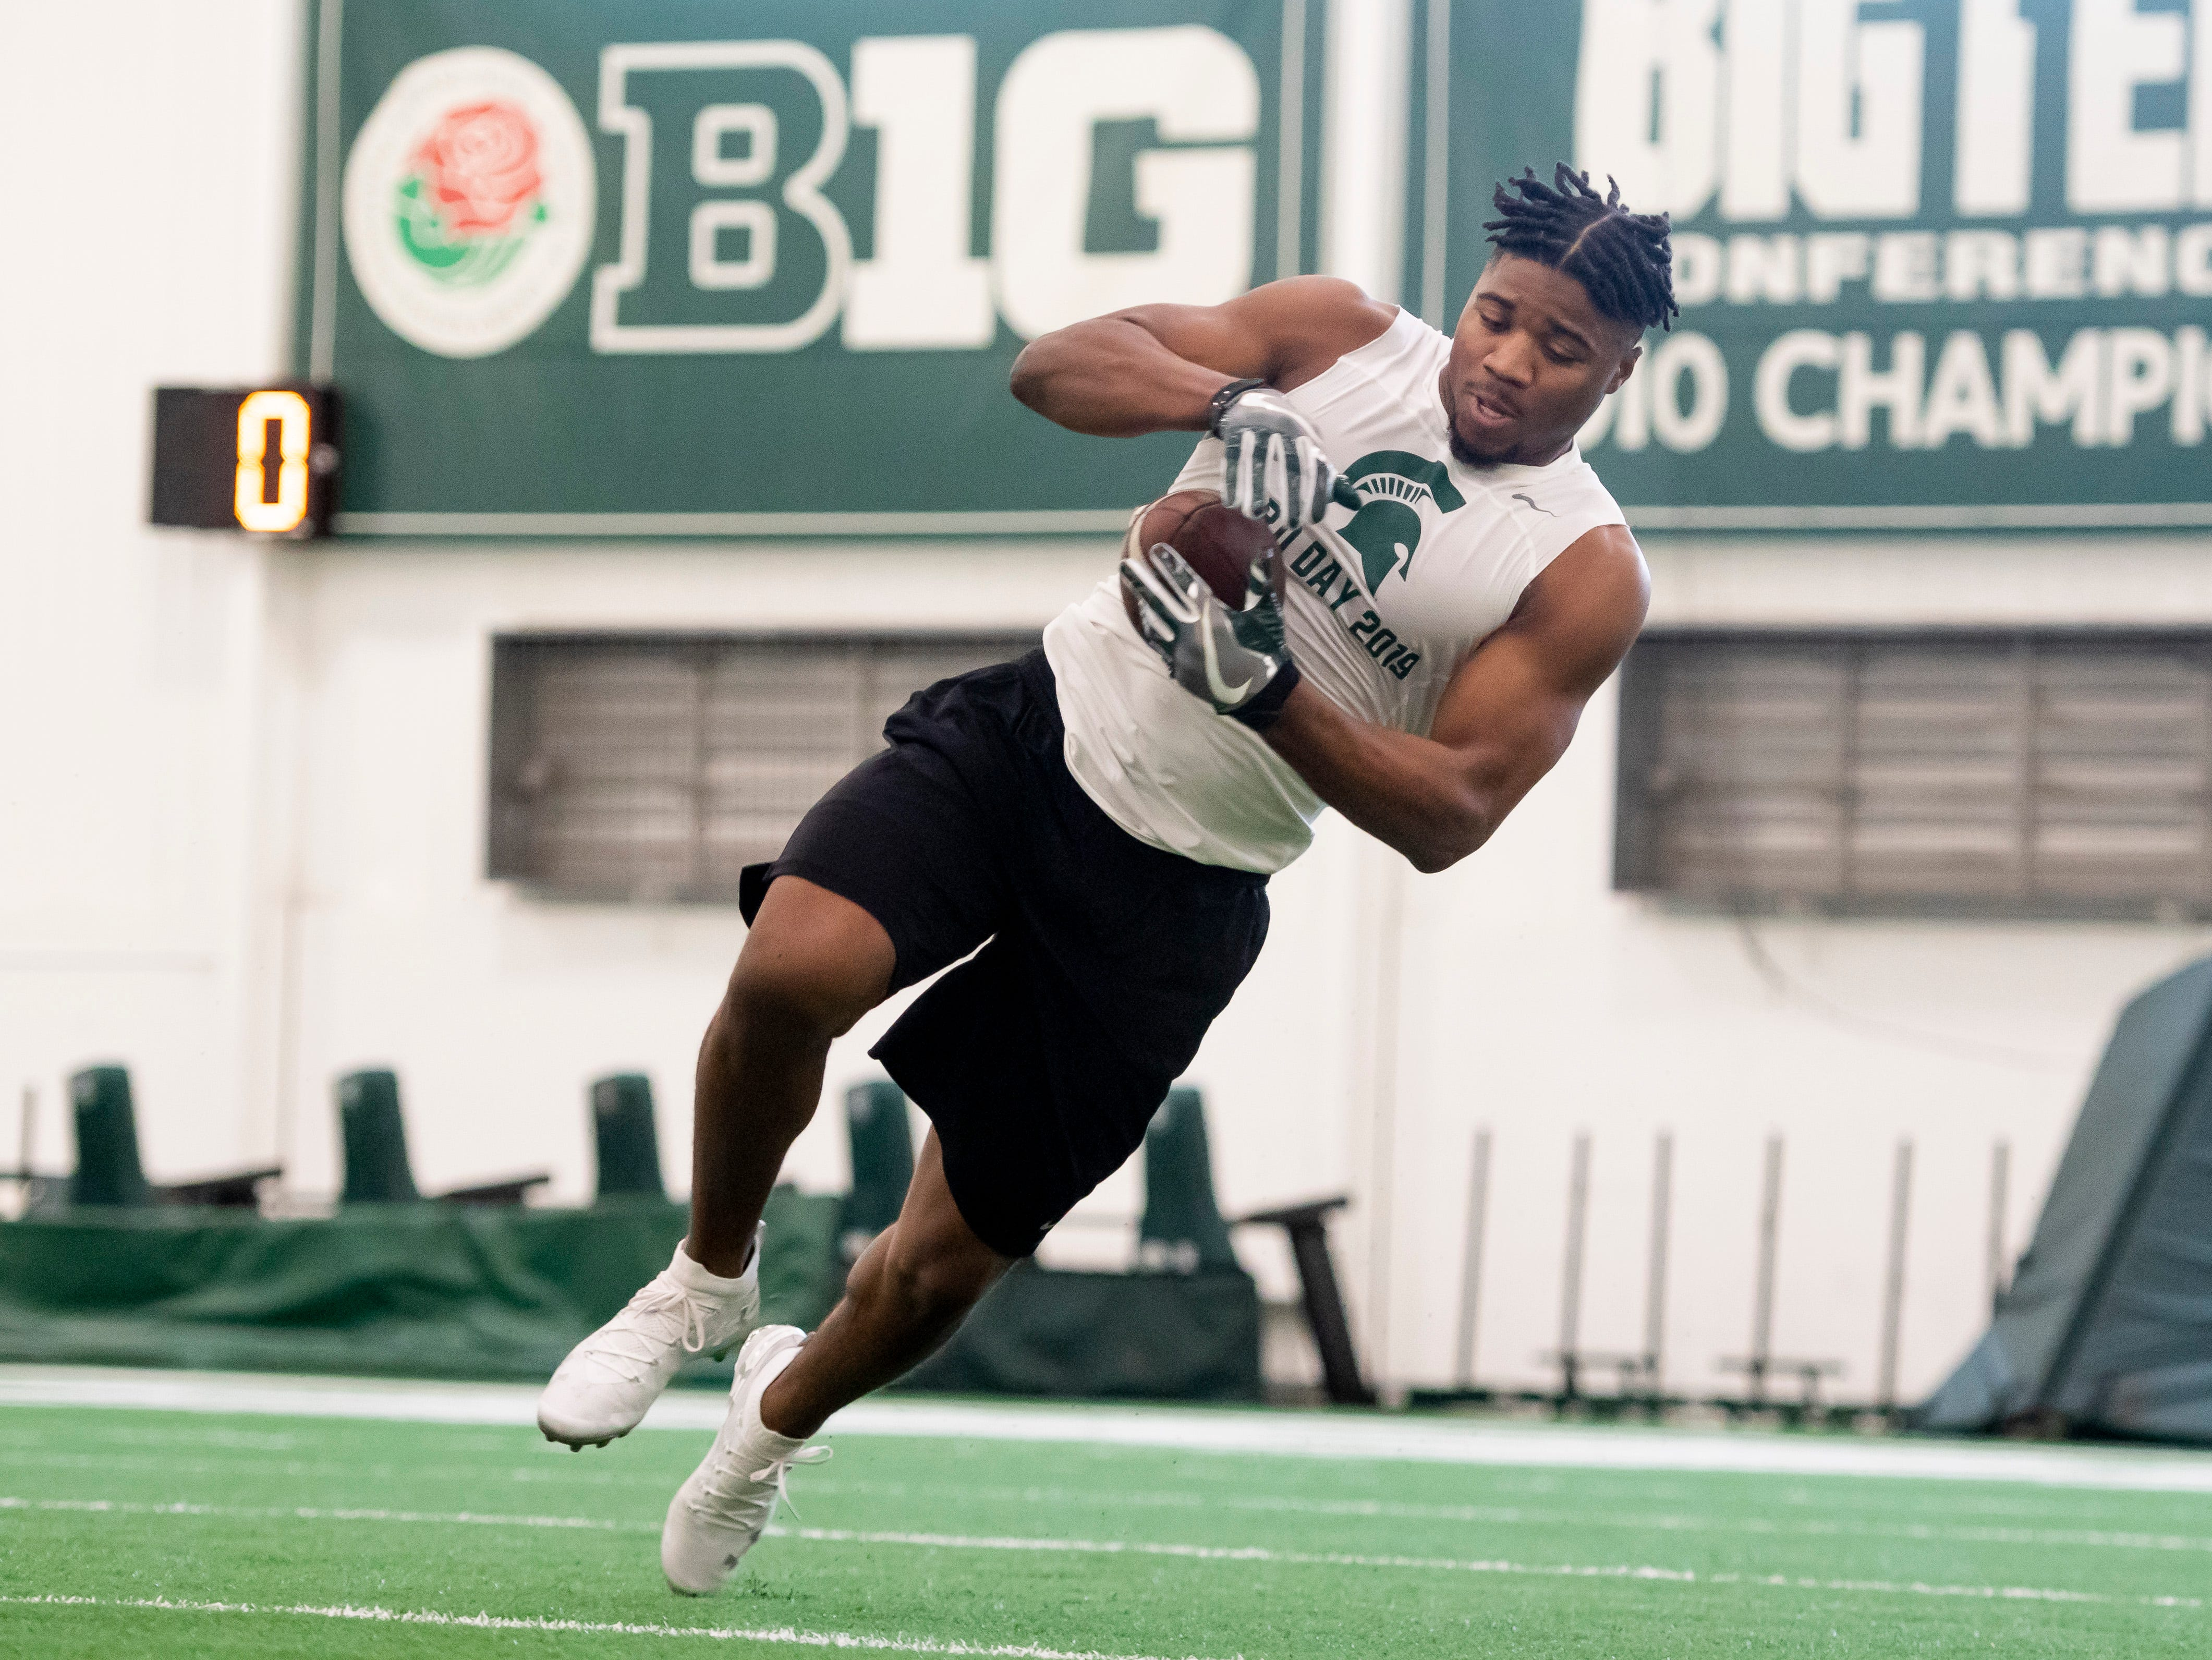 Michigan State linebacker Andrew Dowell catches a pass while running a drill.